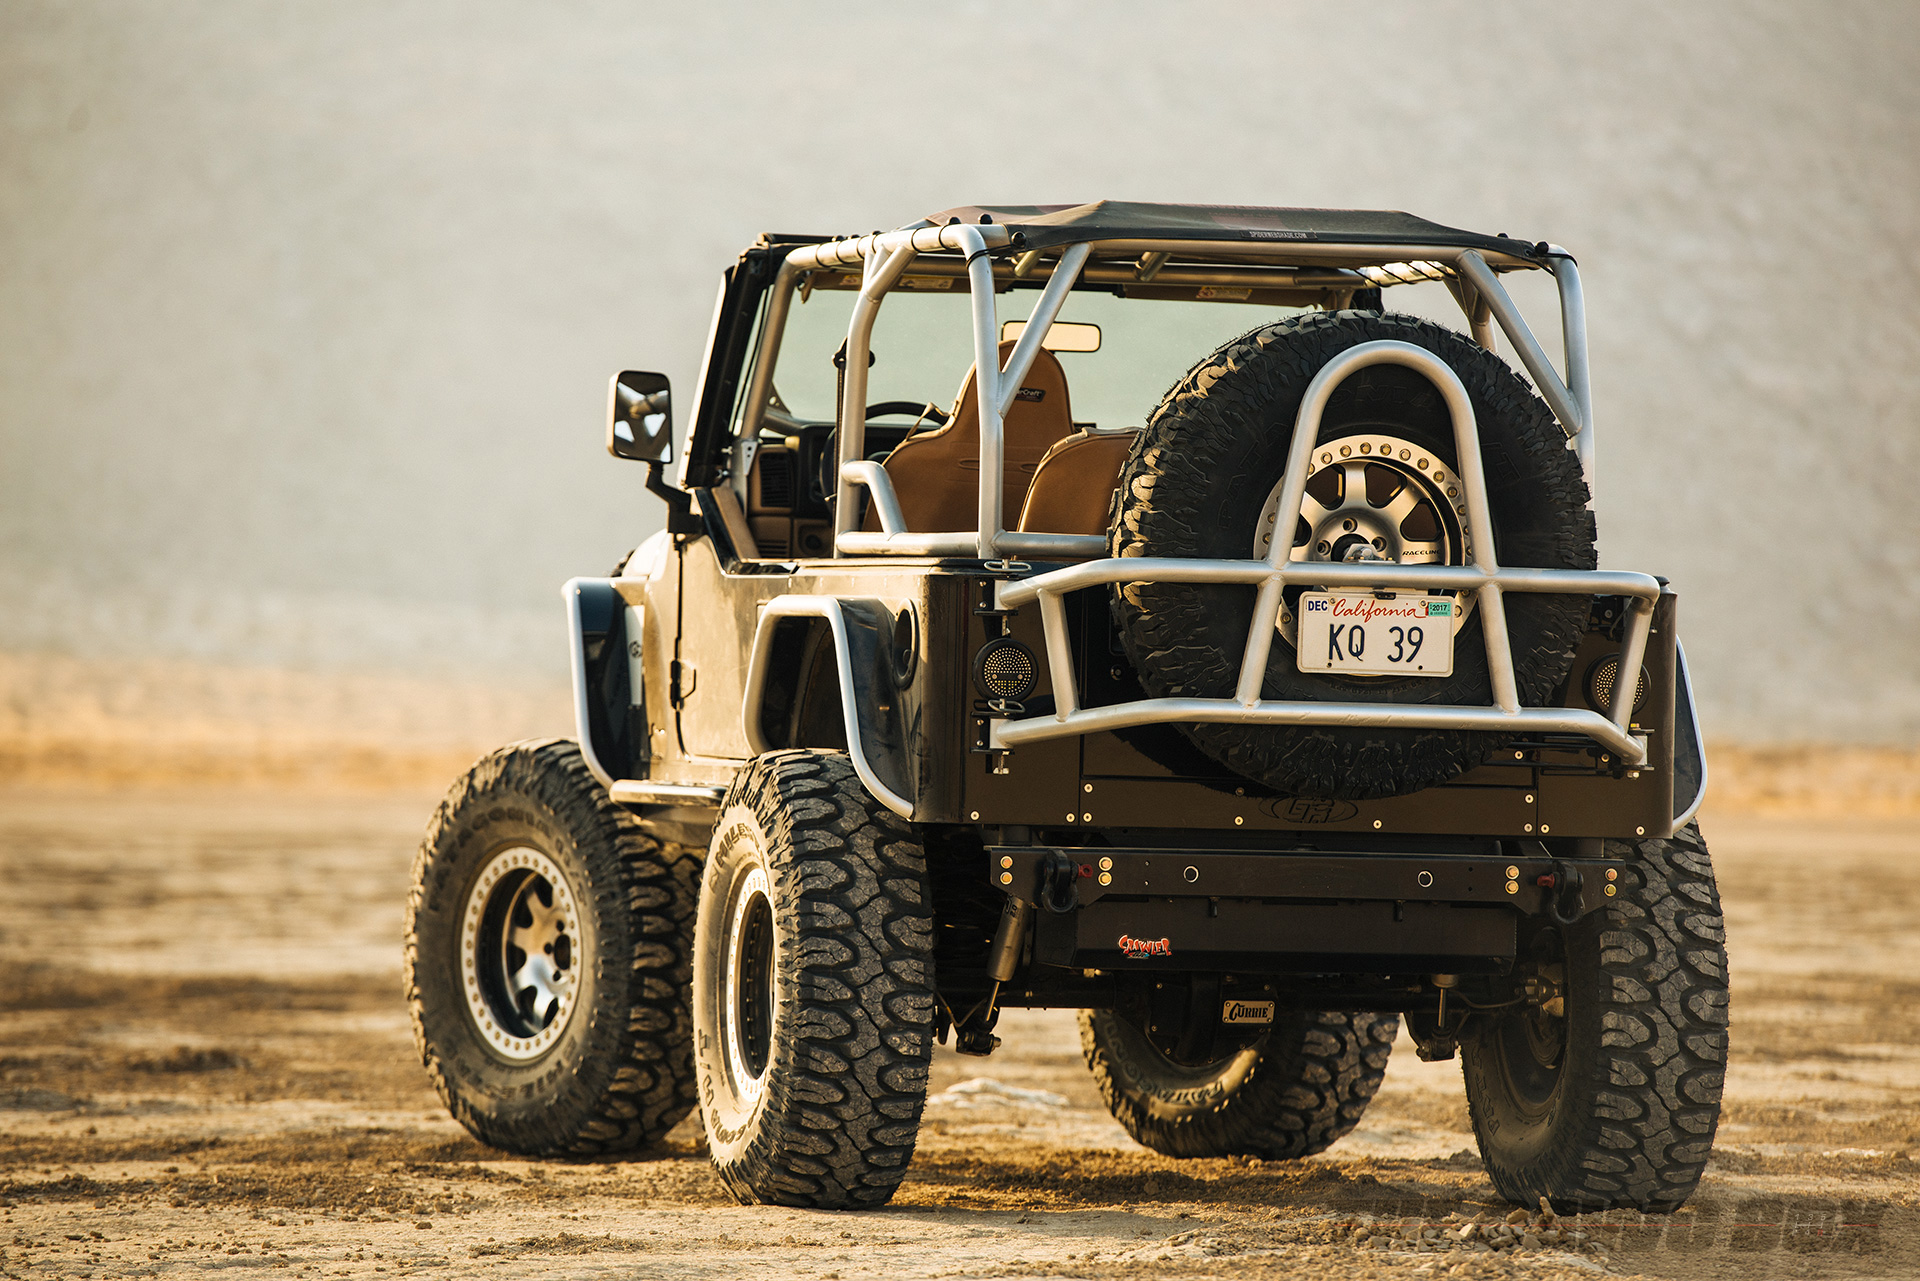 Jason Zamora's 2000 Jeep Wrangler TJ, Back View